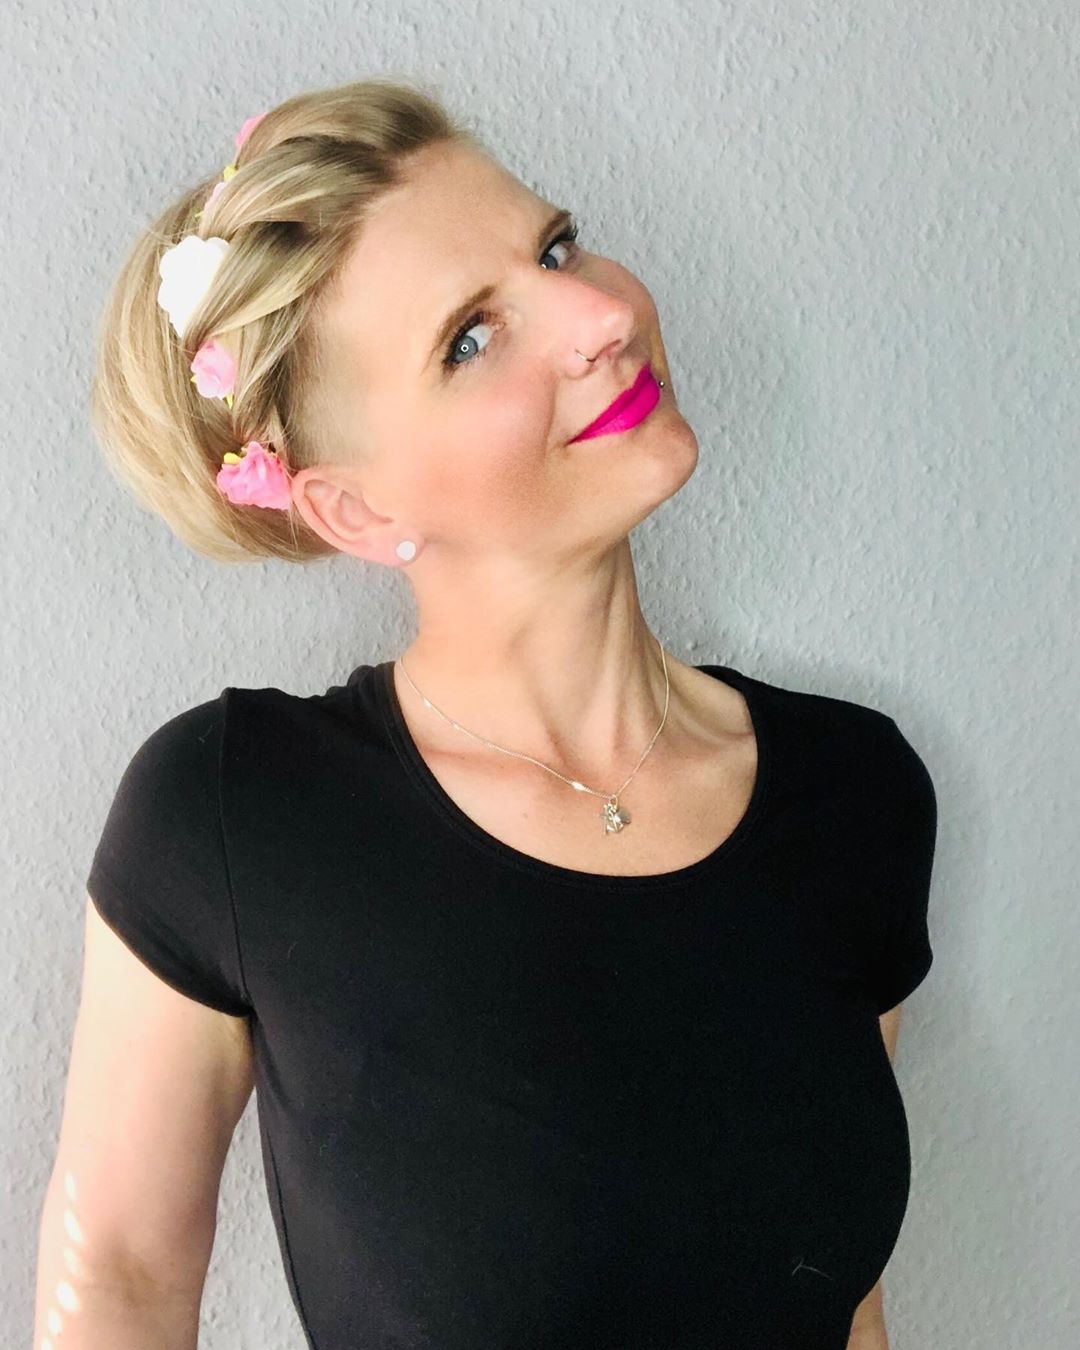 Best Pixie Bob Haircuts to Build Your Own in 2020 58